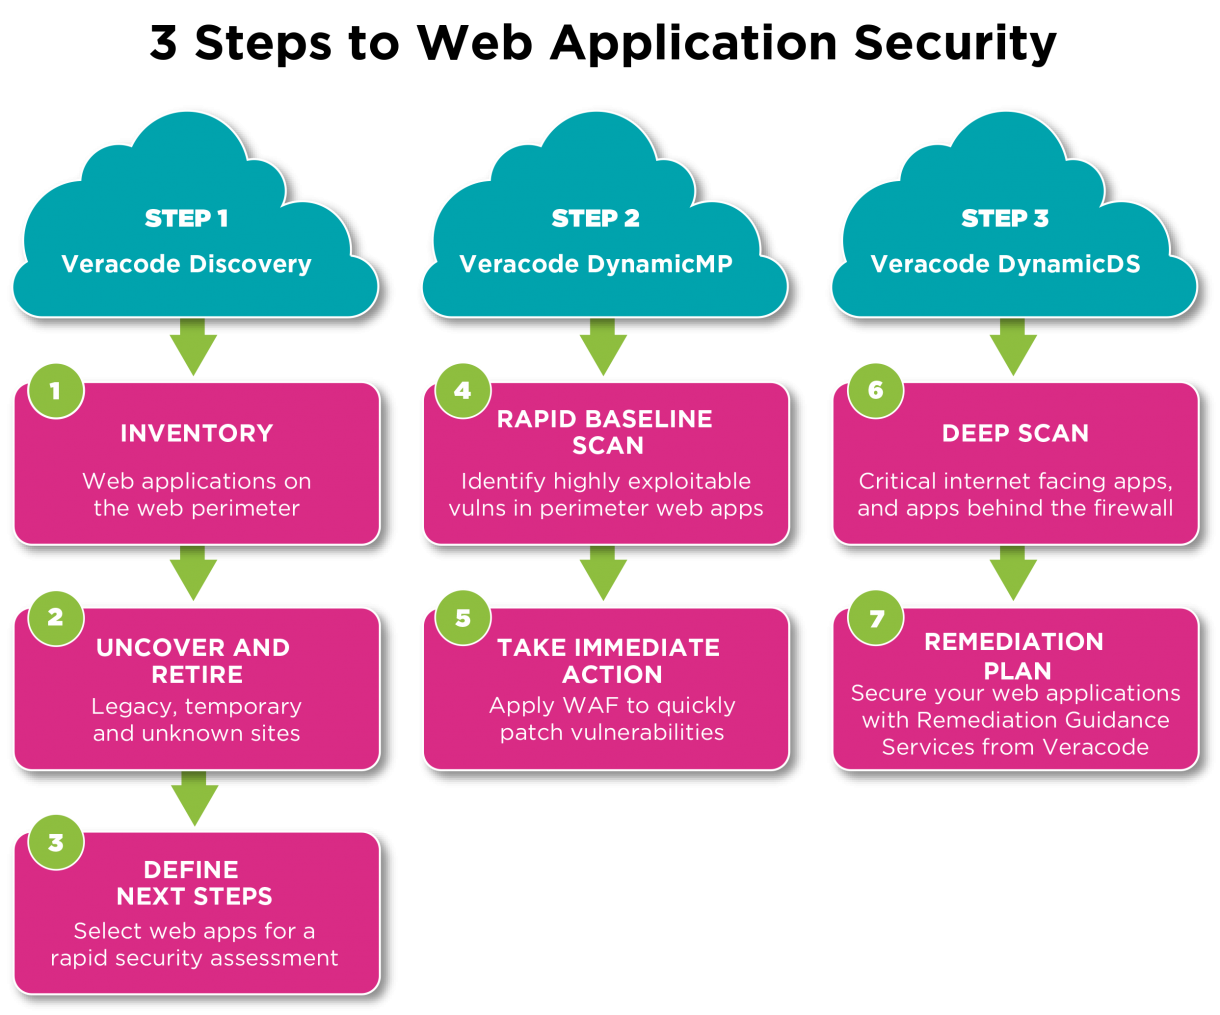 3 Steps to Web Application Security